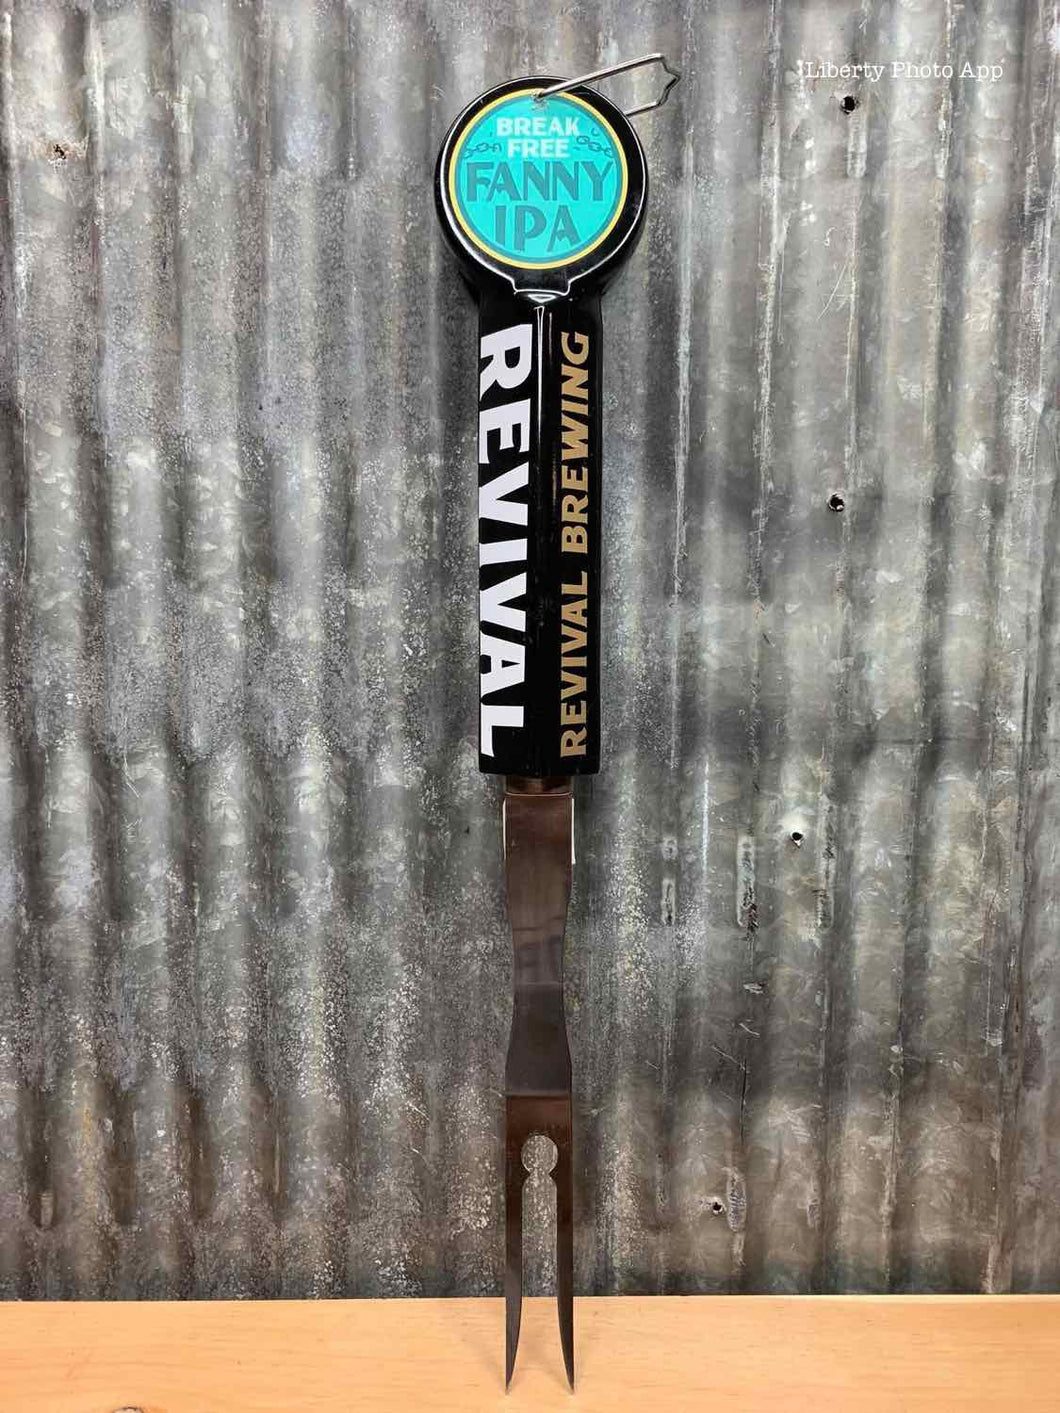 Revival Brewing Fanny IPA Beer Tap - Fork